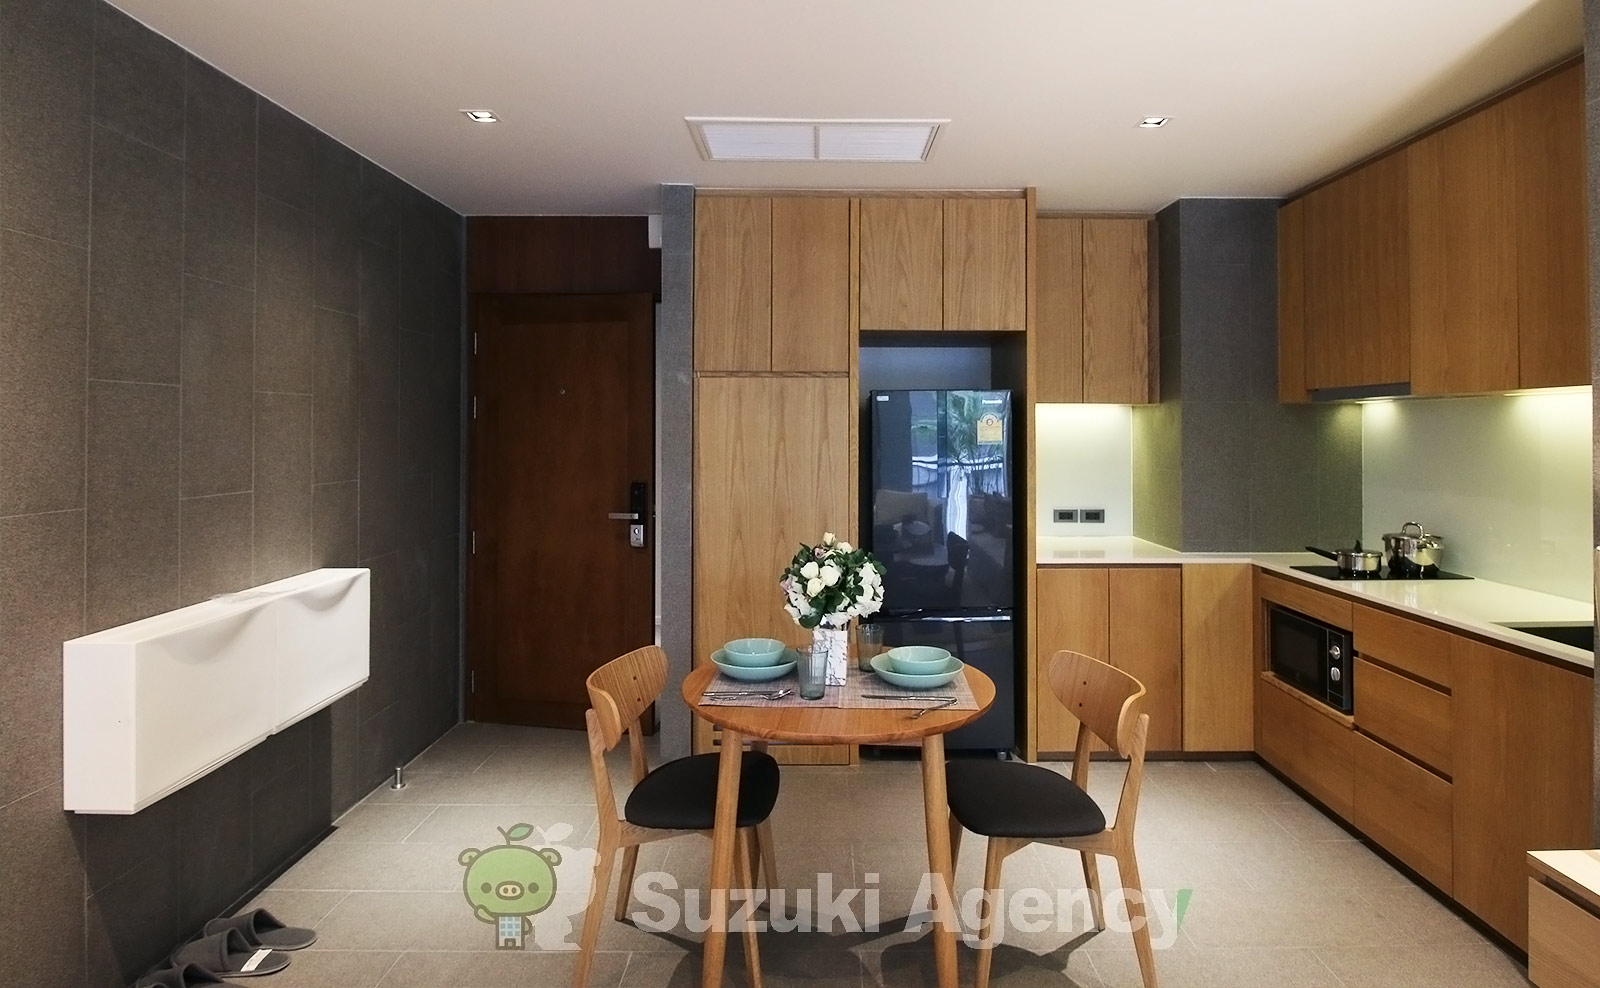 Jitimont Residence:1Bed Room Photos No.5